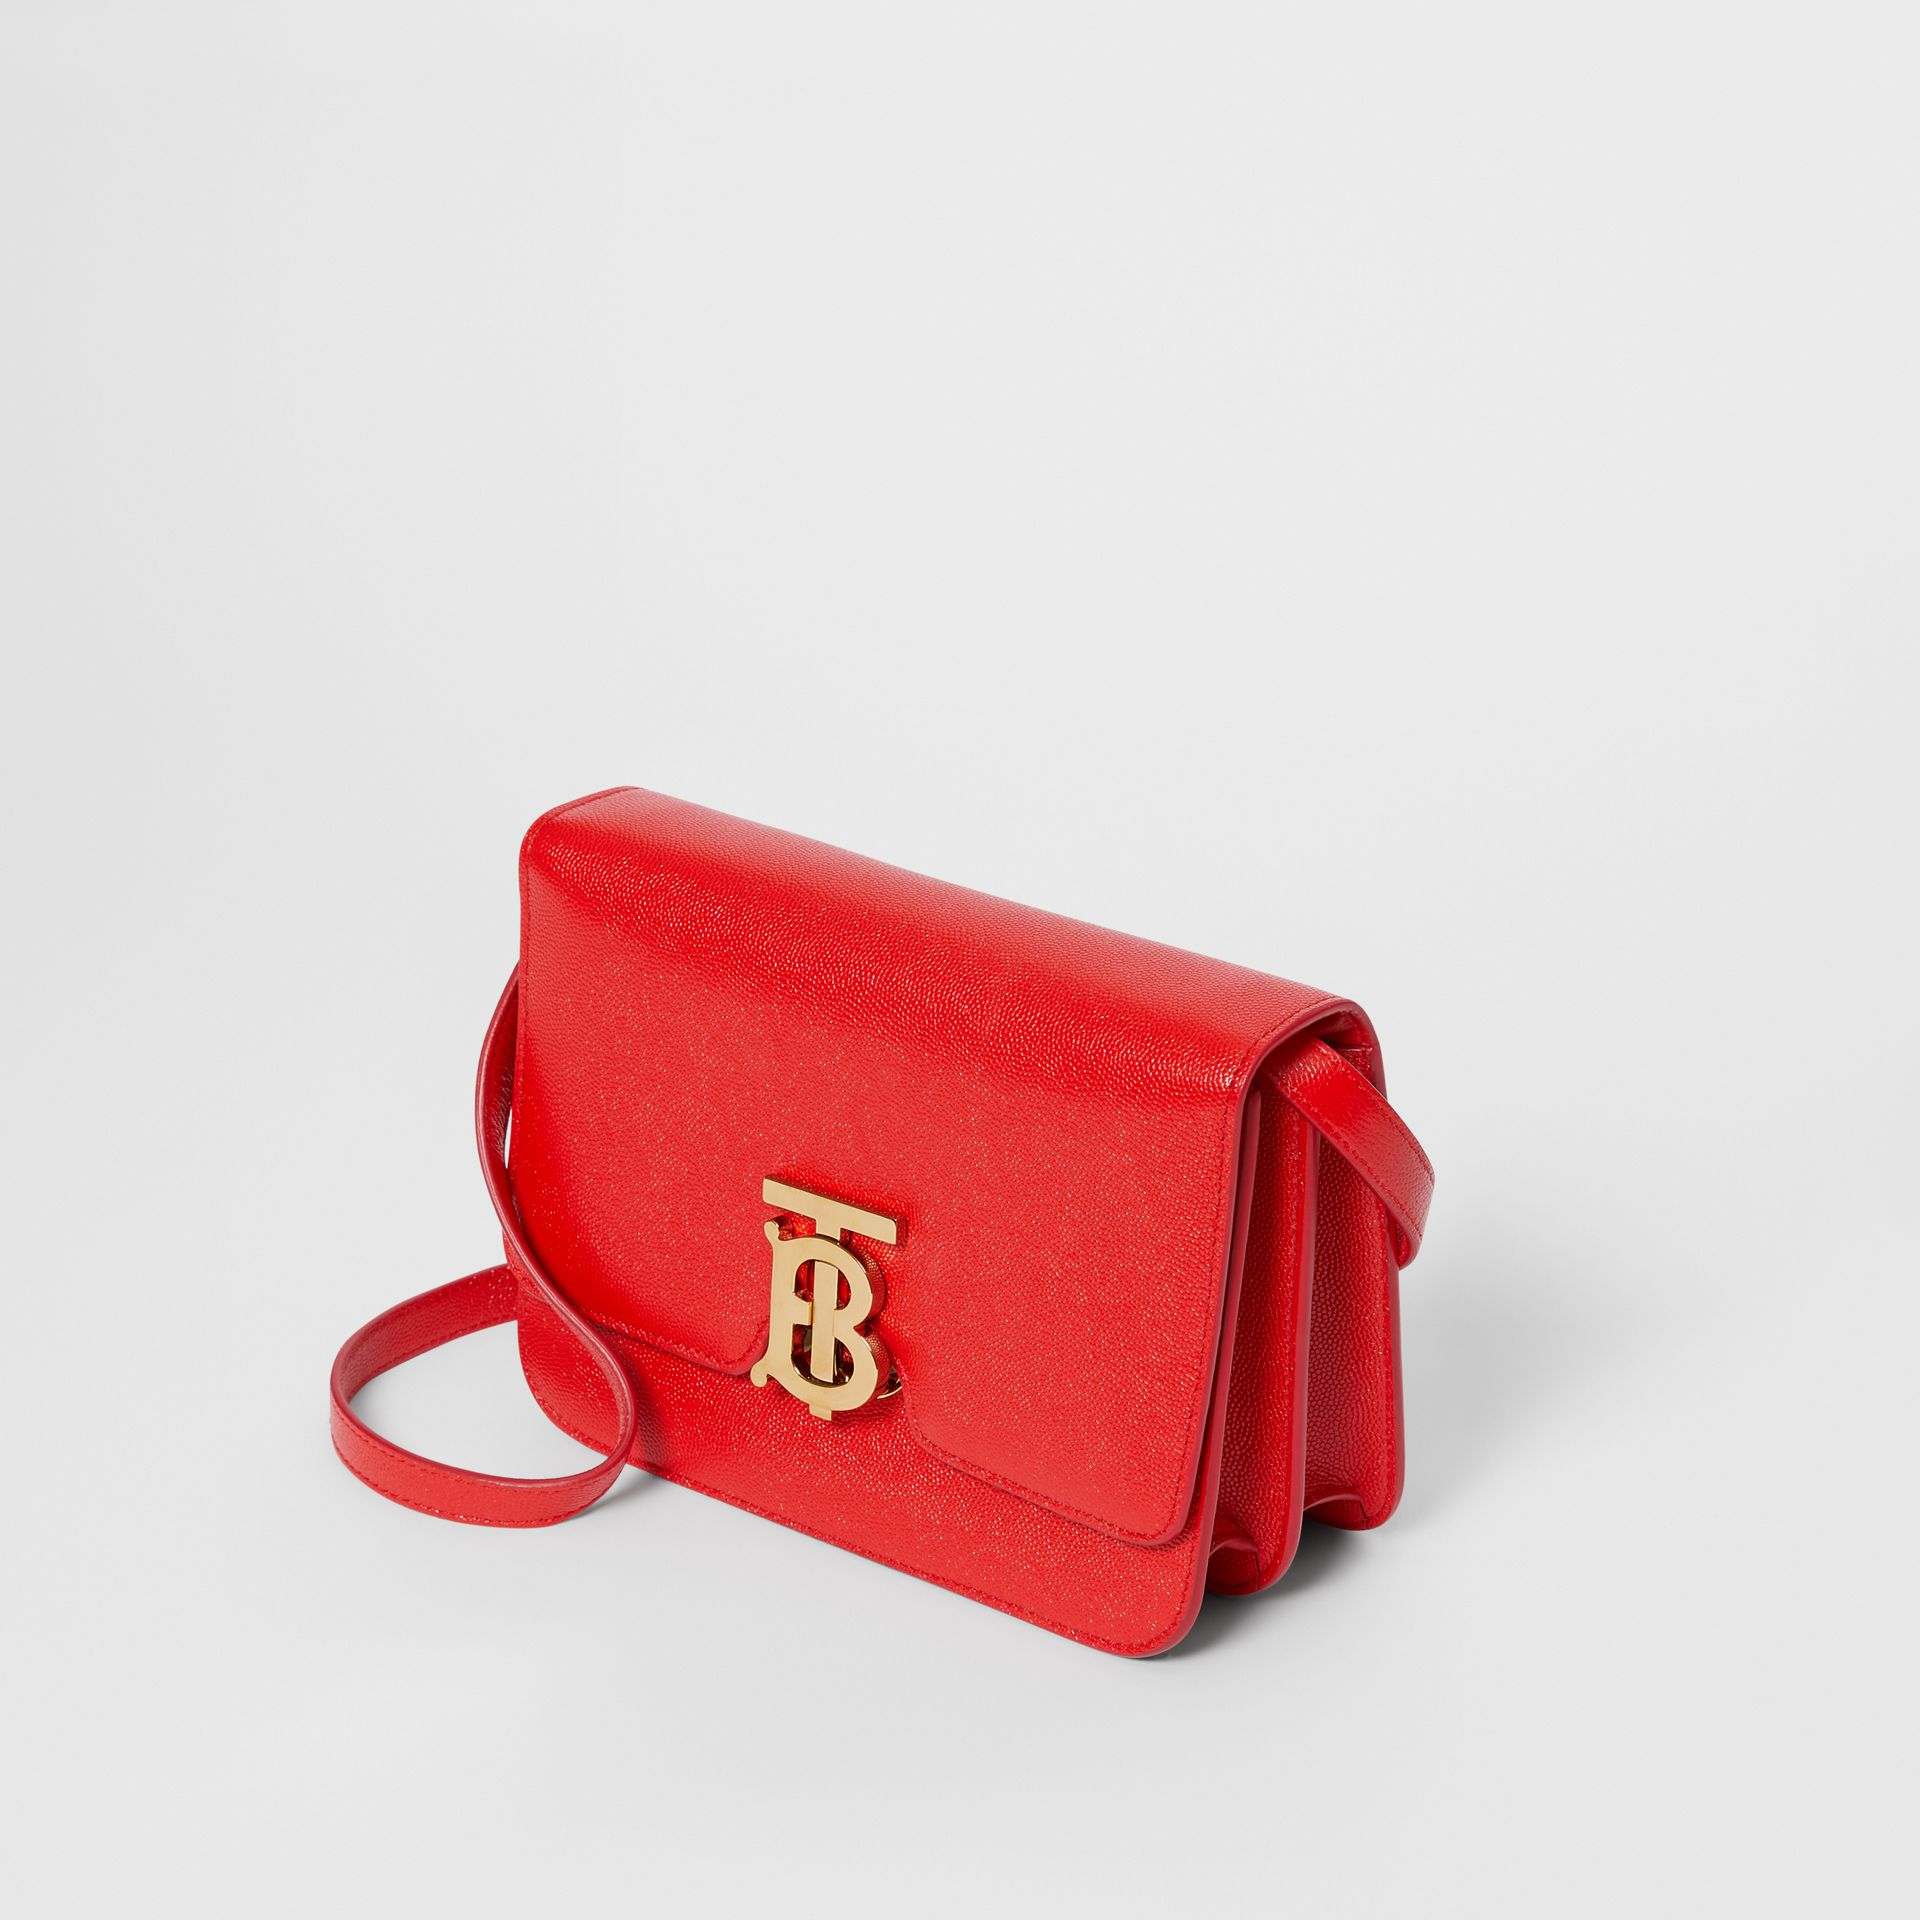 Small Grainy Leather TB Bag in Bright Red - Women | Burberry - gallery image 3